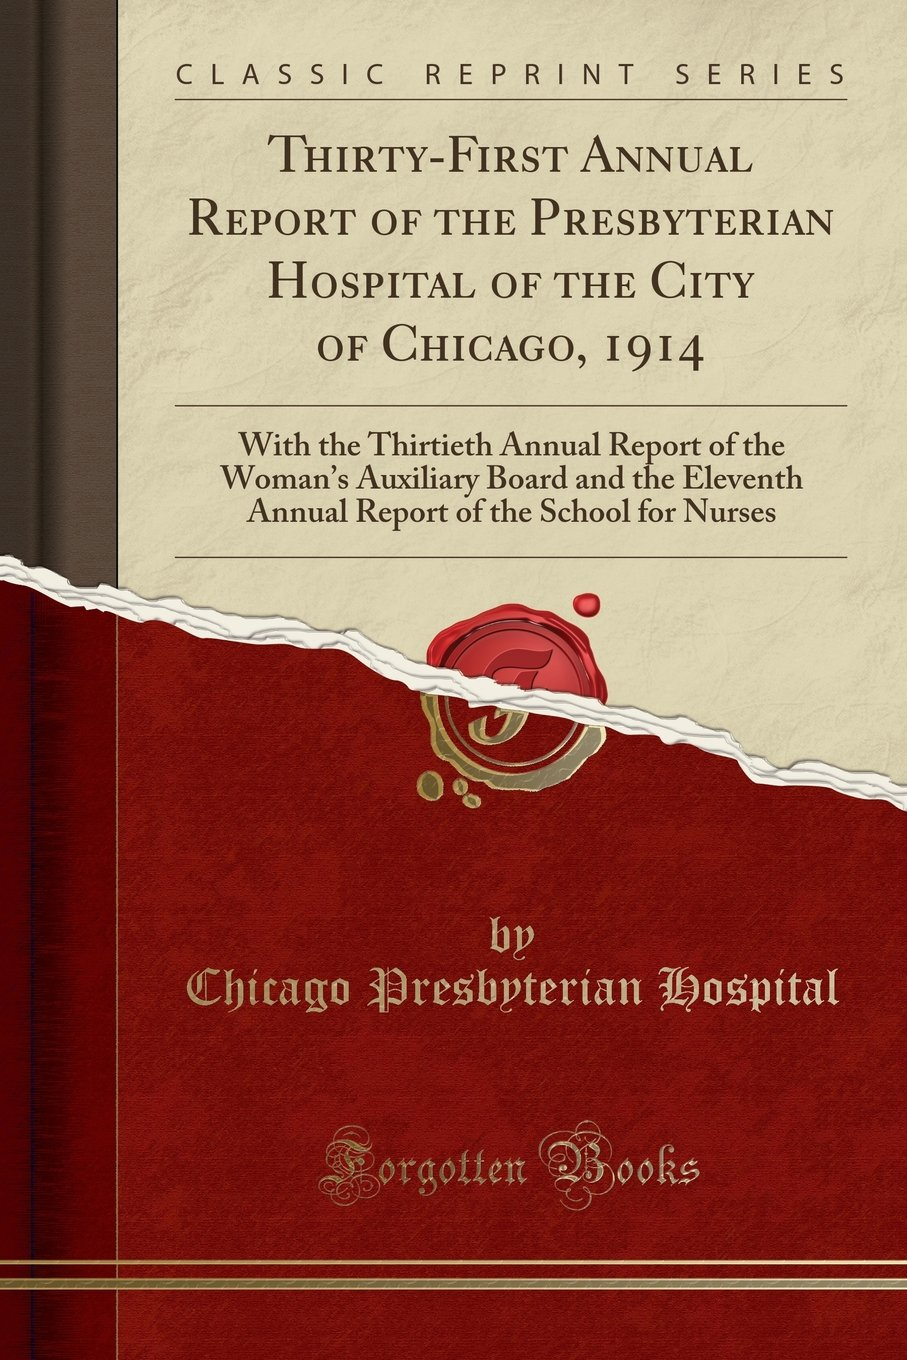 Read Online Thirty-First Annual Report of the Presbyterian Hospital of the City of Chicago, 1914: With the Thirtieth Annual Report of the Woman's Auxiliary Board ... of the School for Nurses (Classic Reprint) pdf